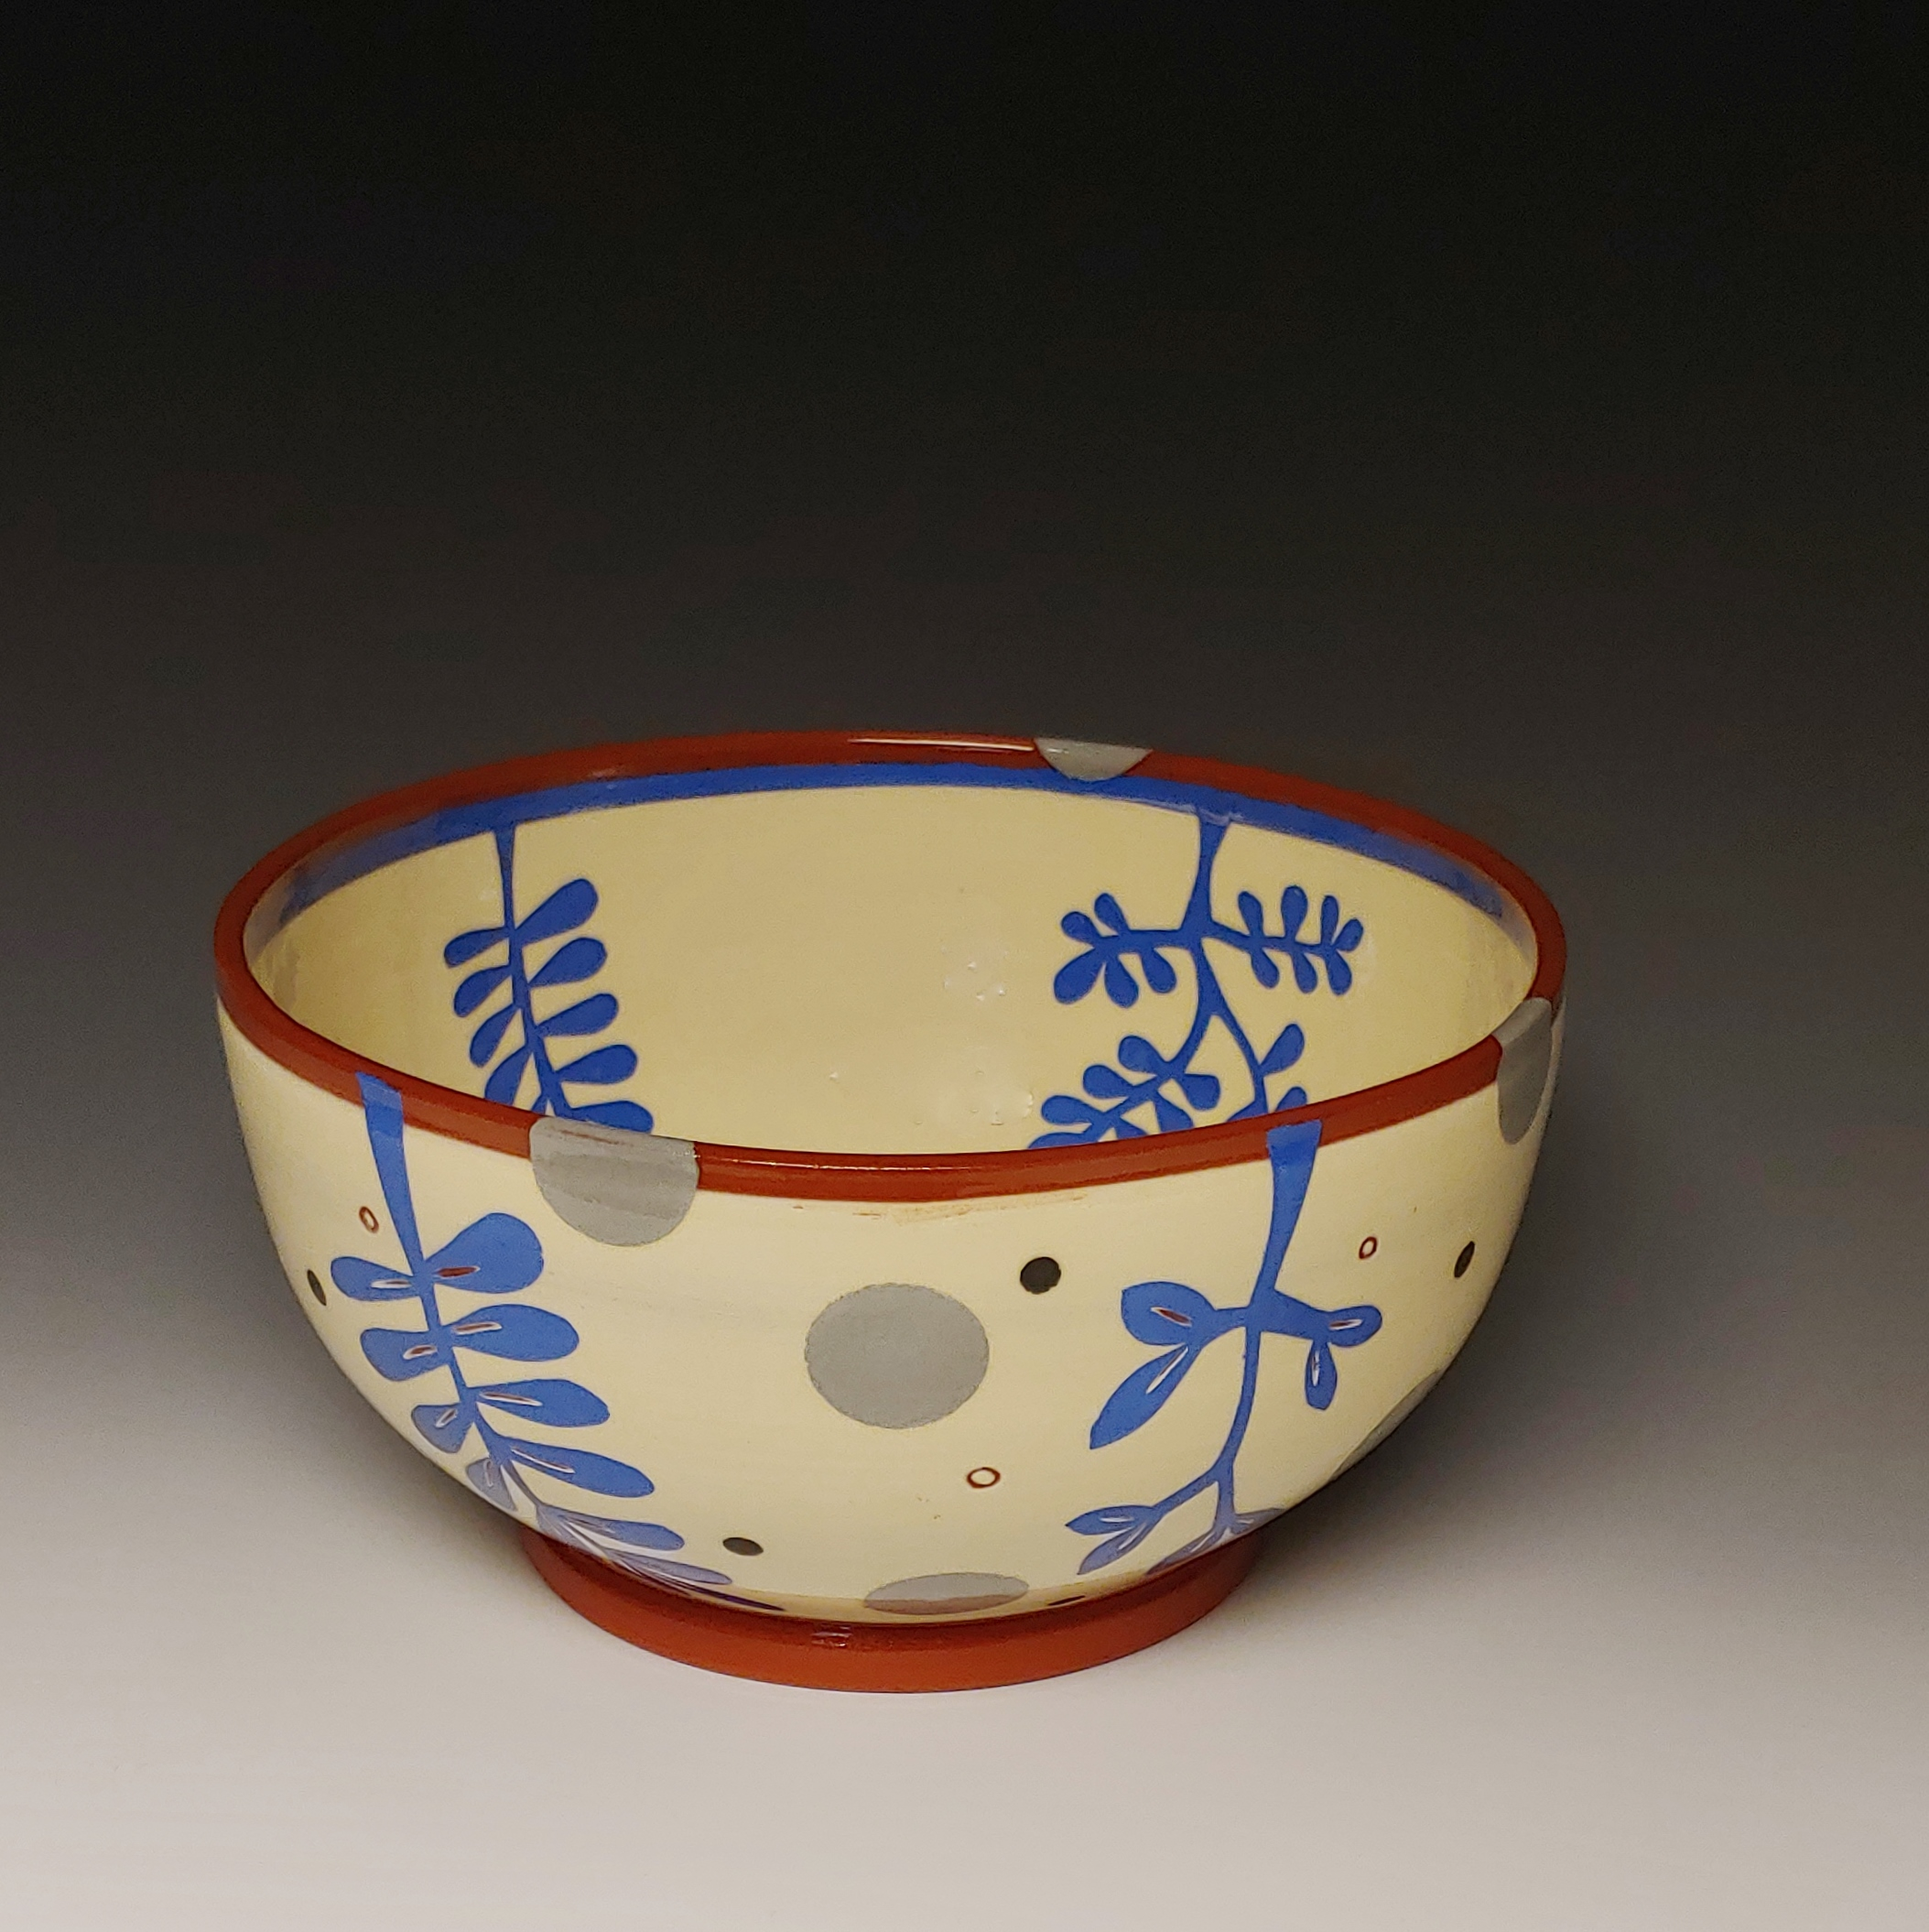 Medium Serving Bowl with Blue Leafy Cutouts and Gray Spots Throughout